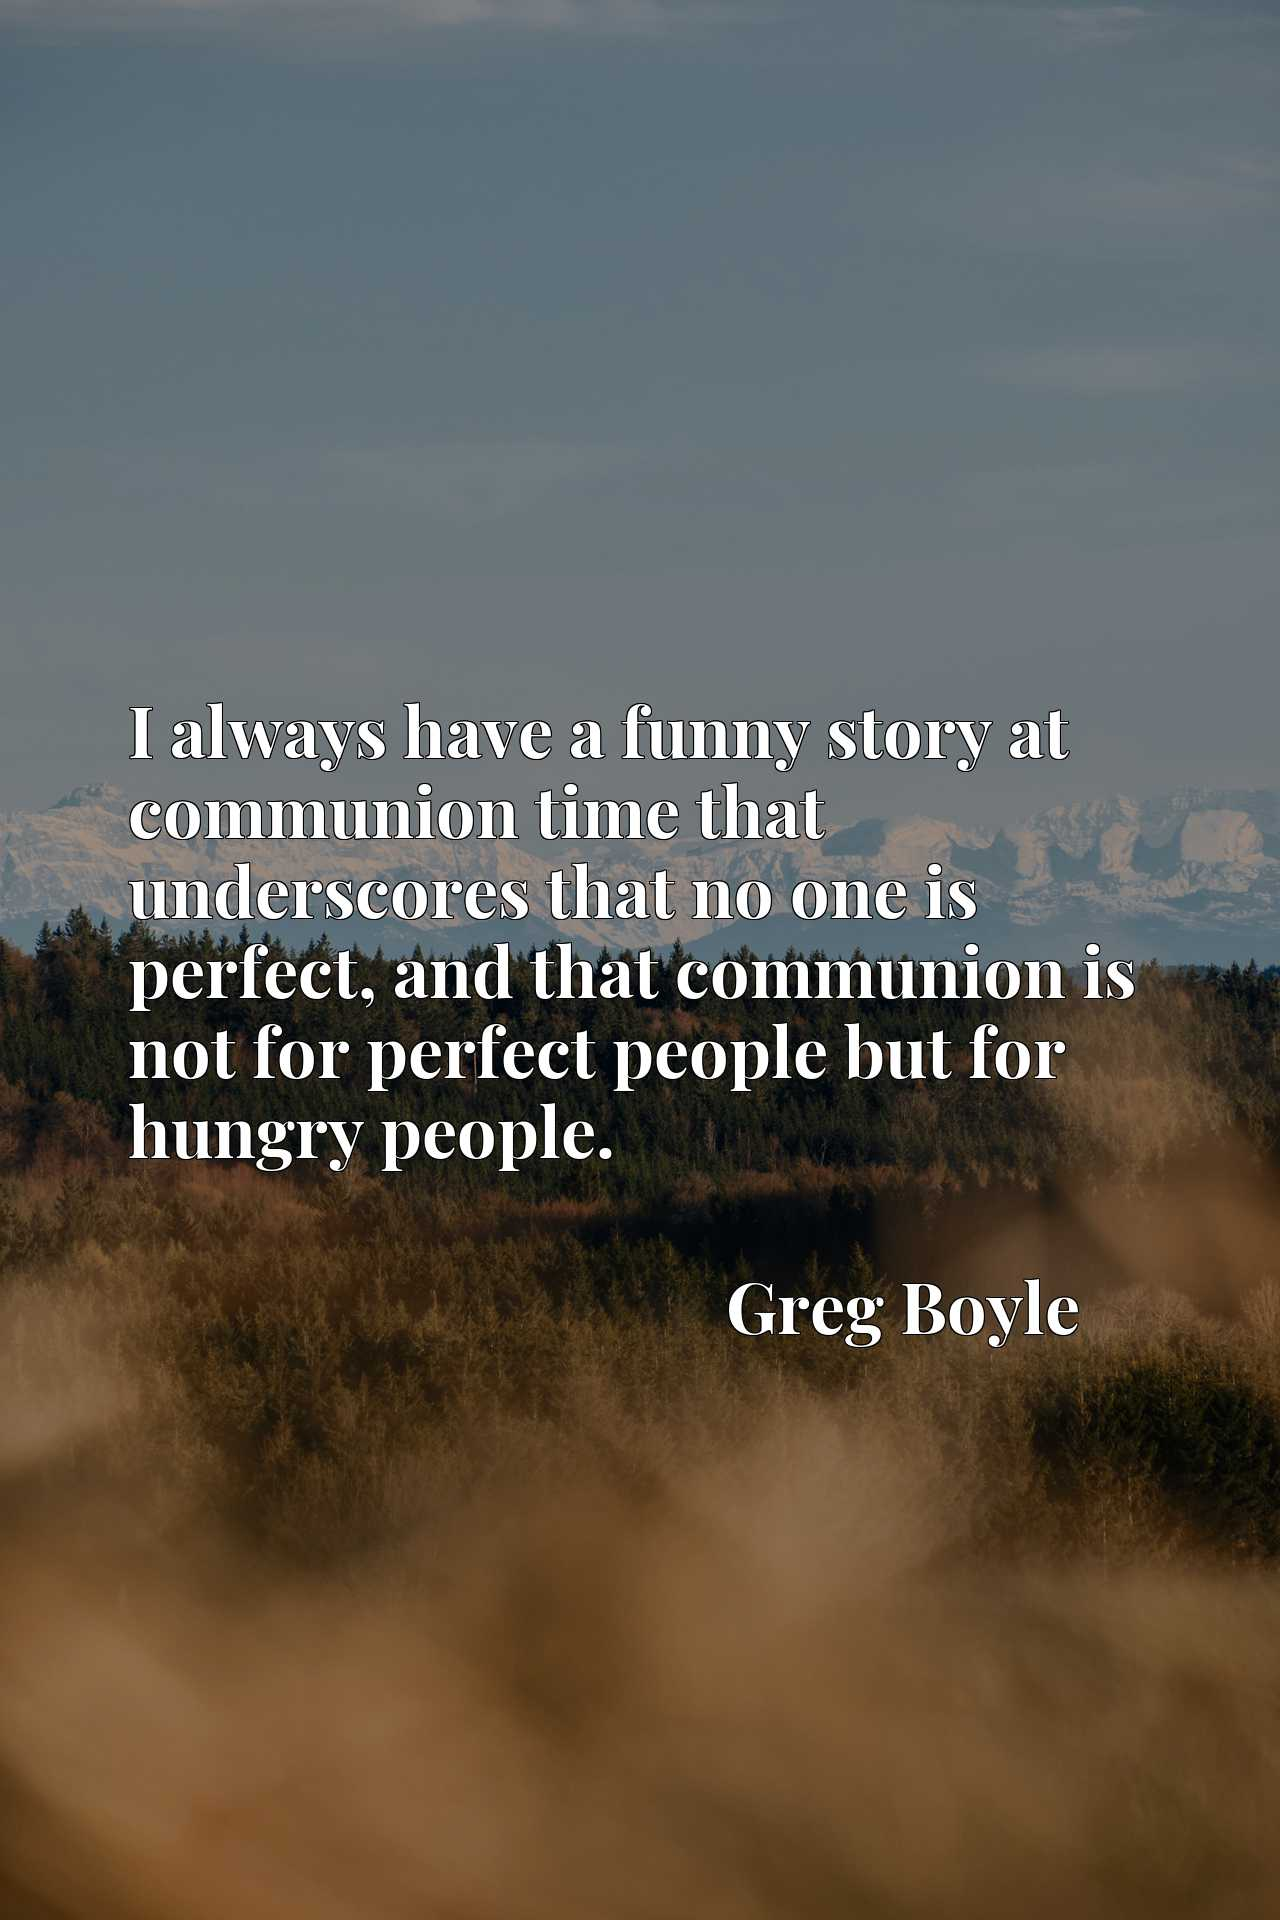 I always have a funny story at communion time that underscores that no one is perfect, and that communion is not for perfect people but for hungry people.